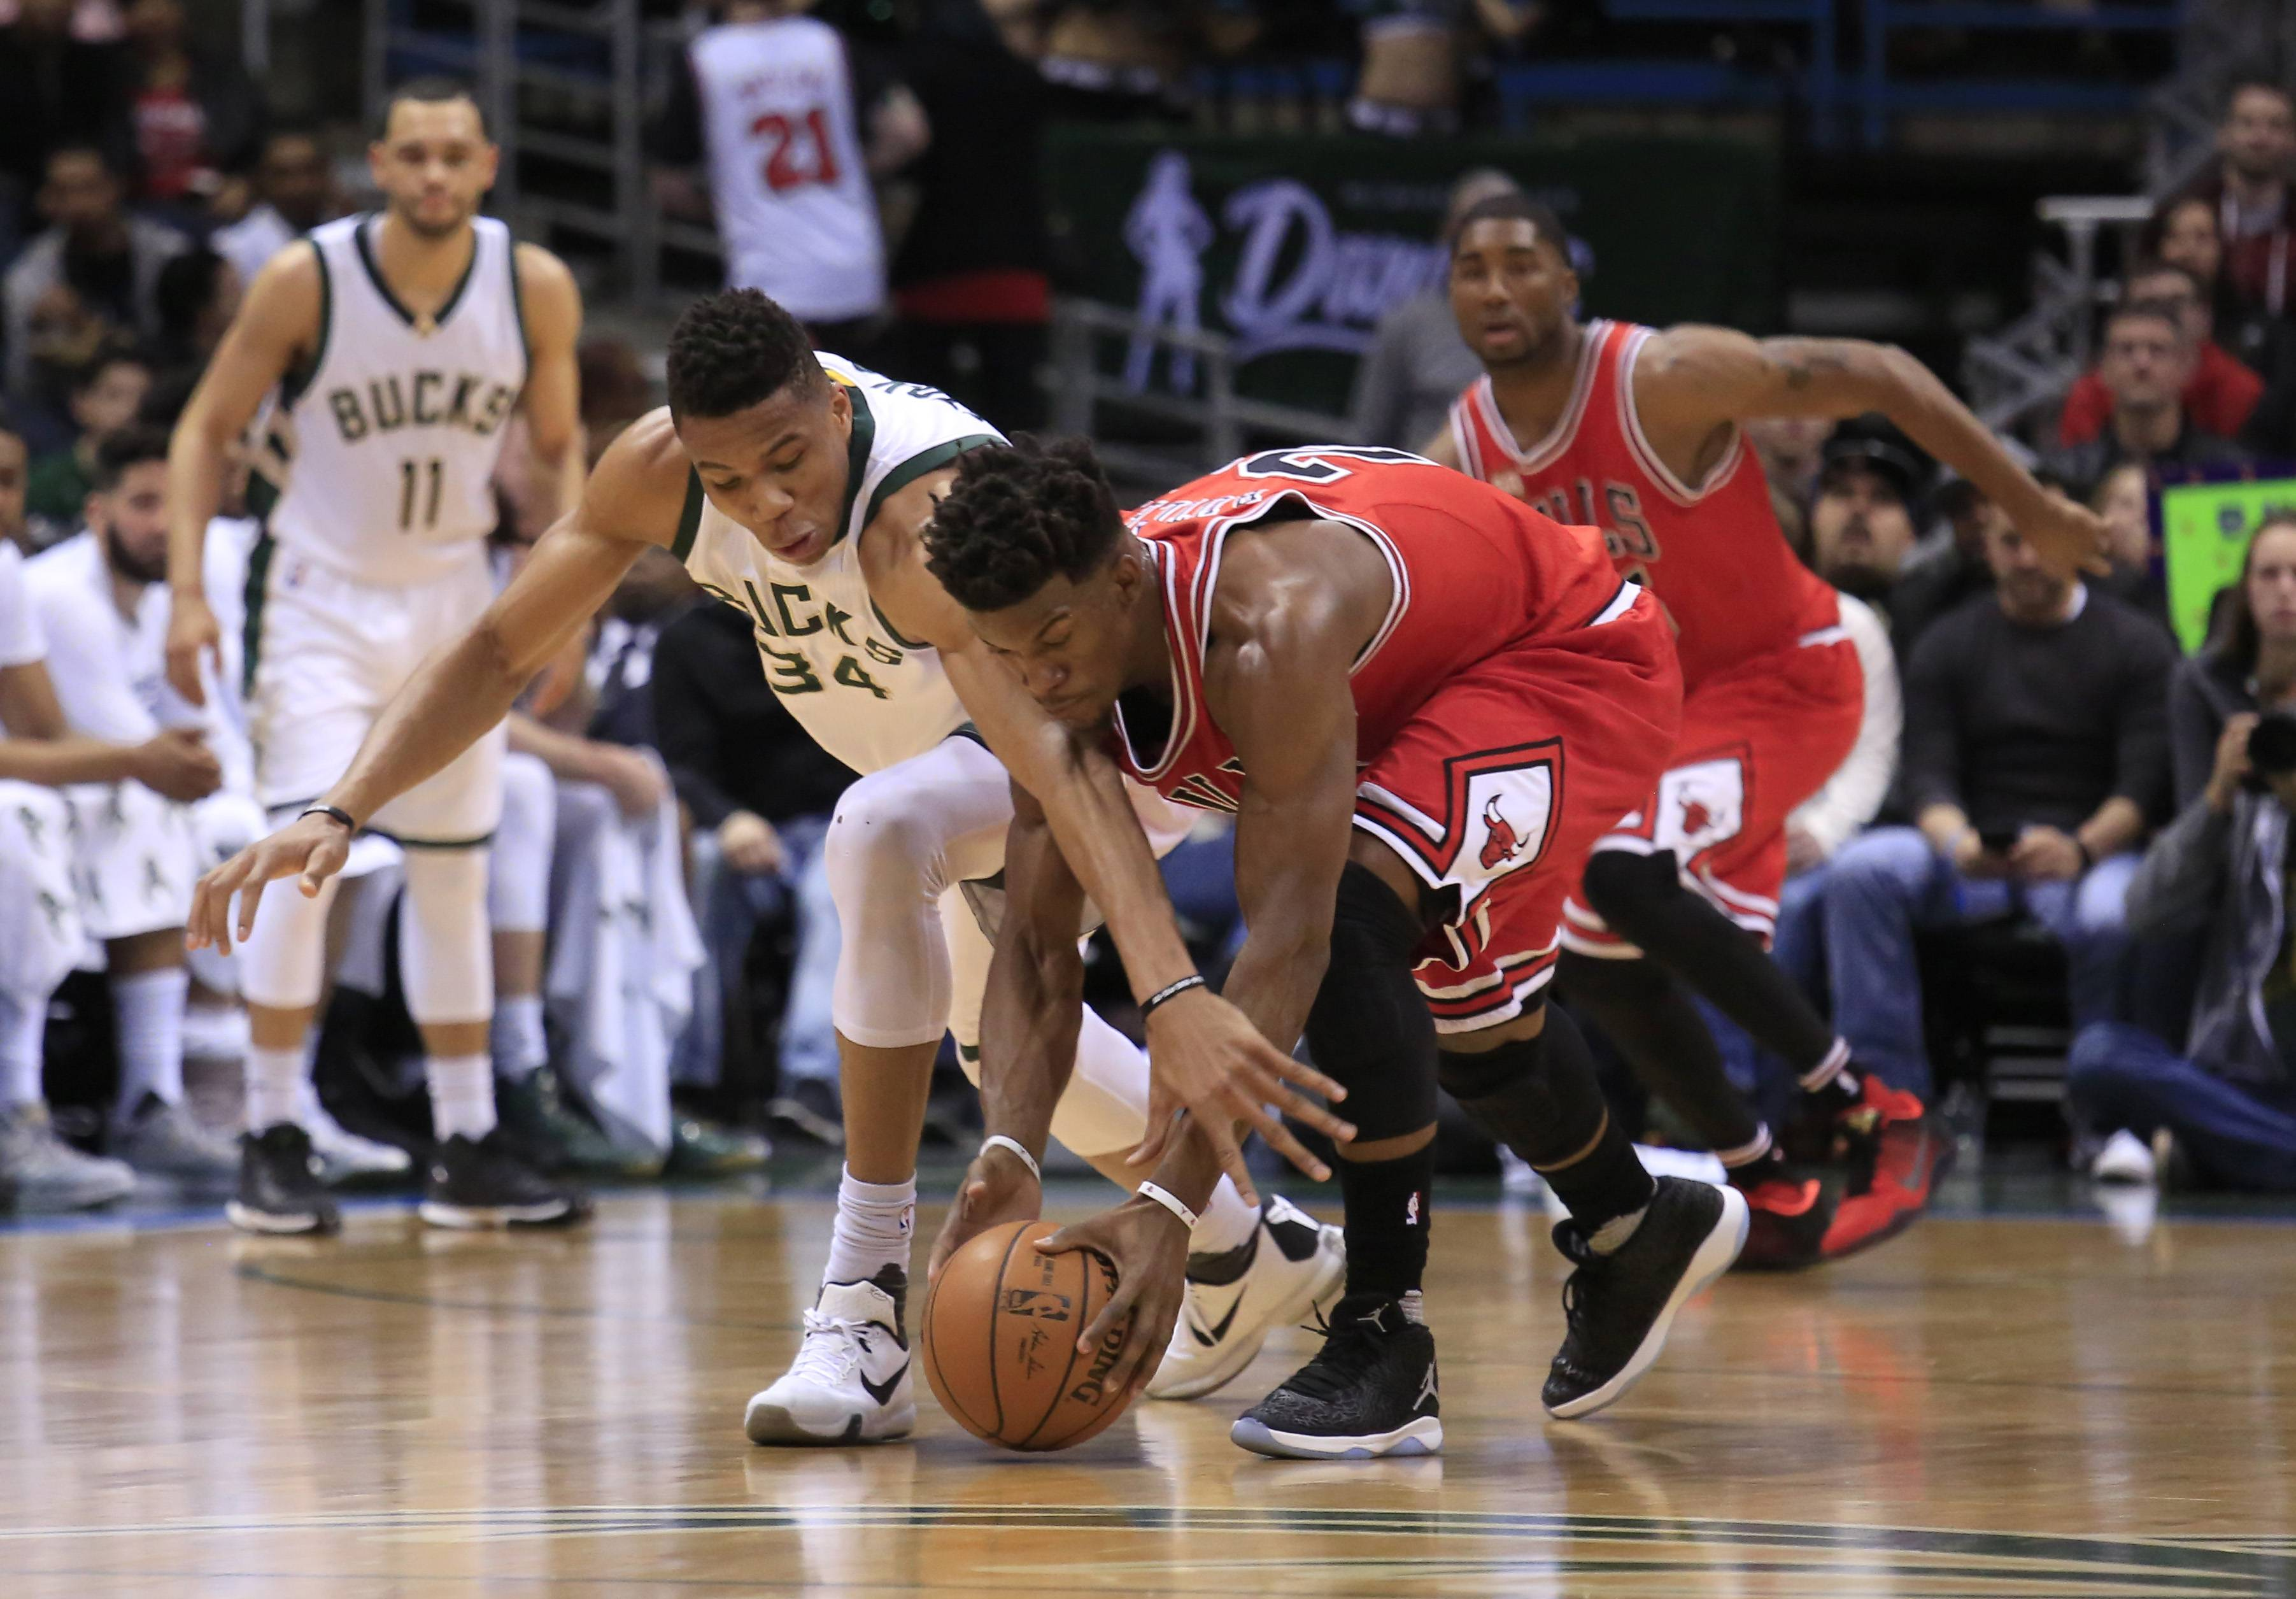 Butler's accuracy leads Chicago Bulls over Bucks